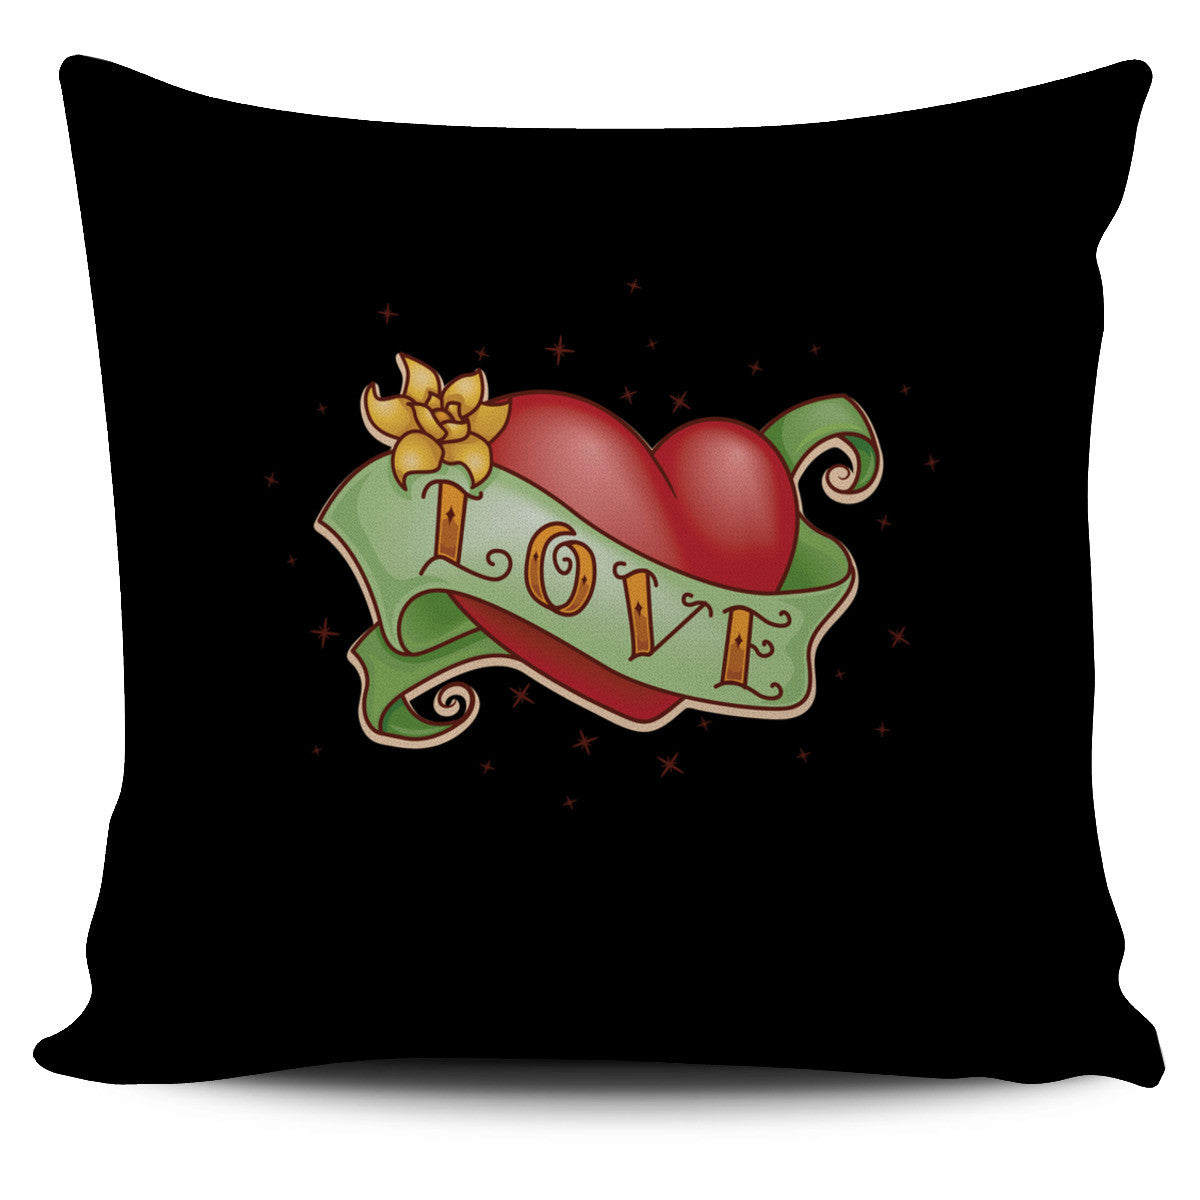 Step In Love Pillow Cover 3